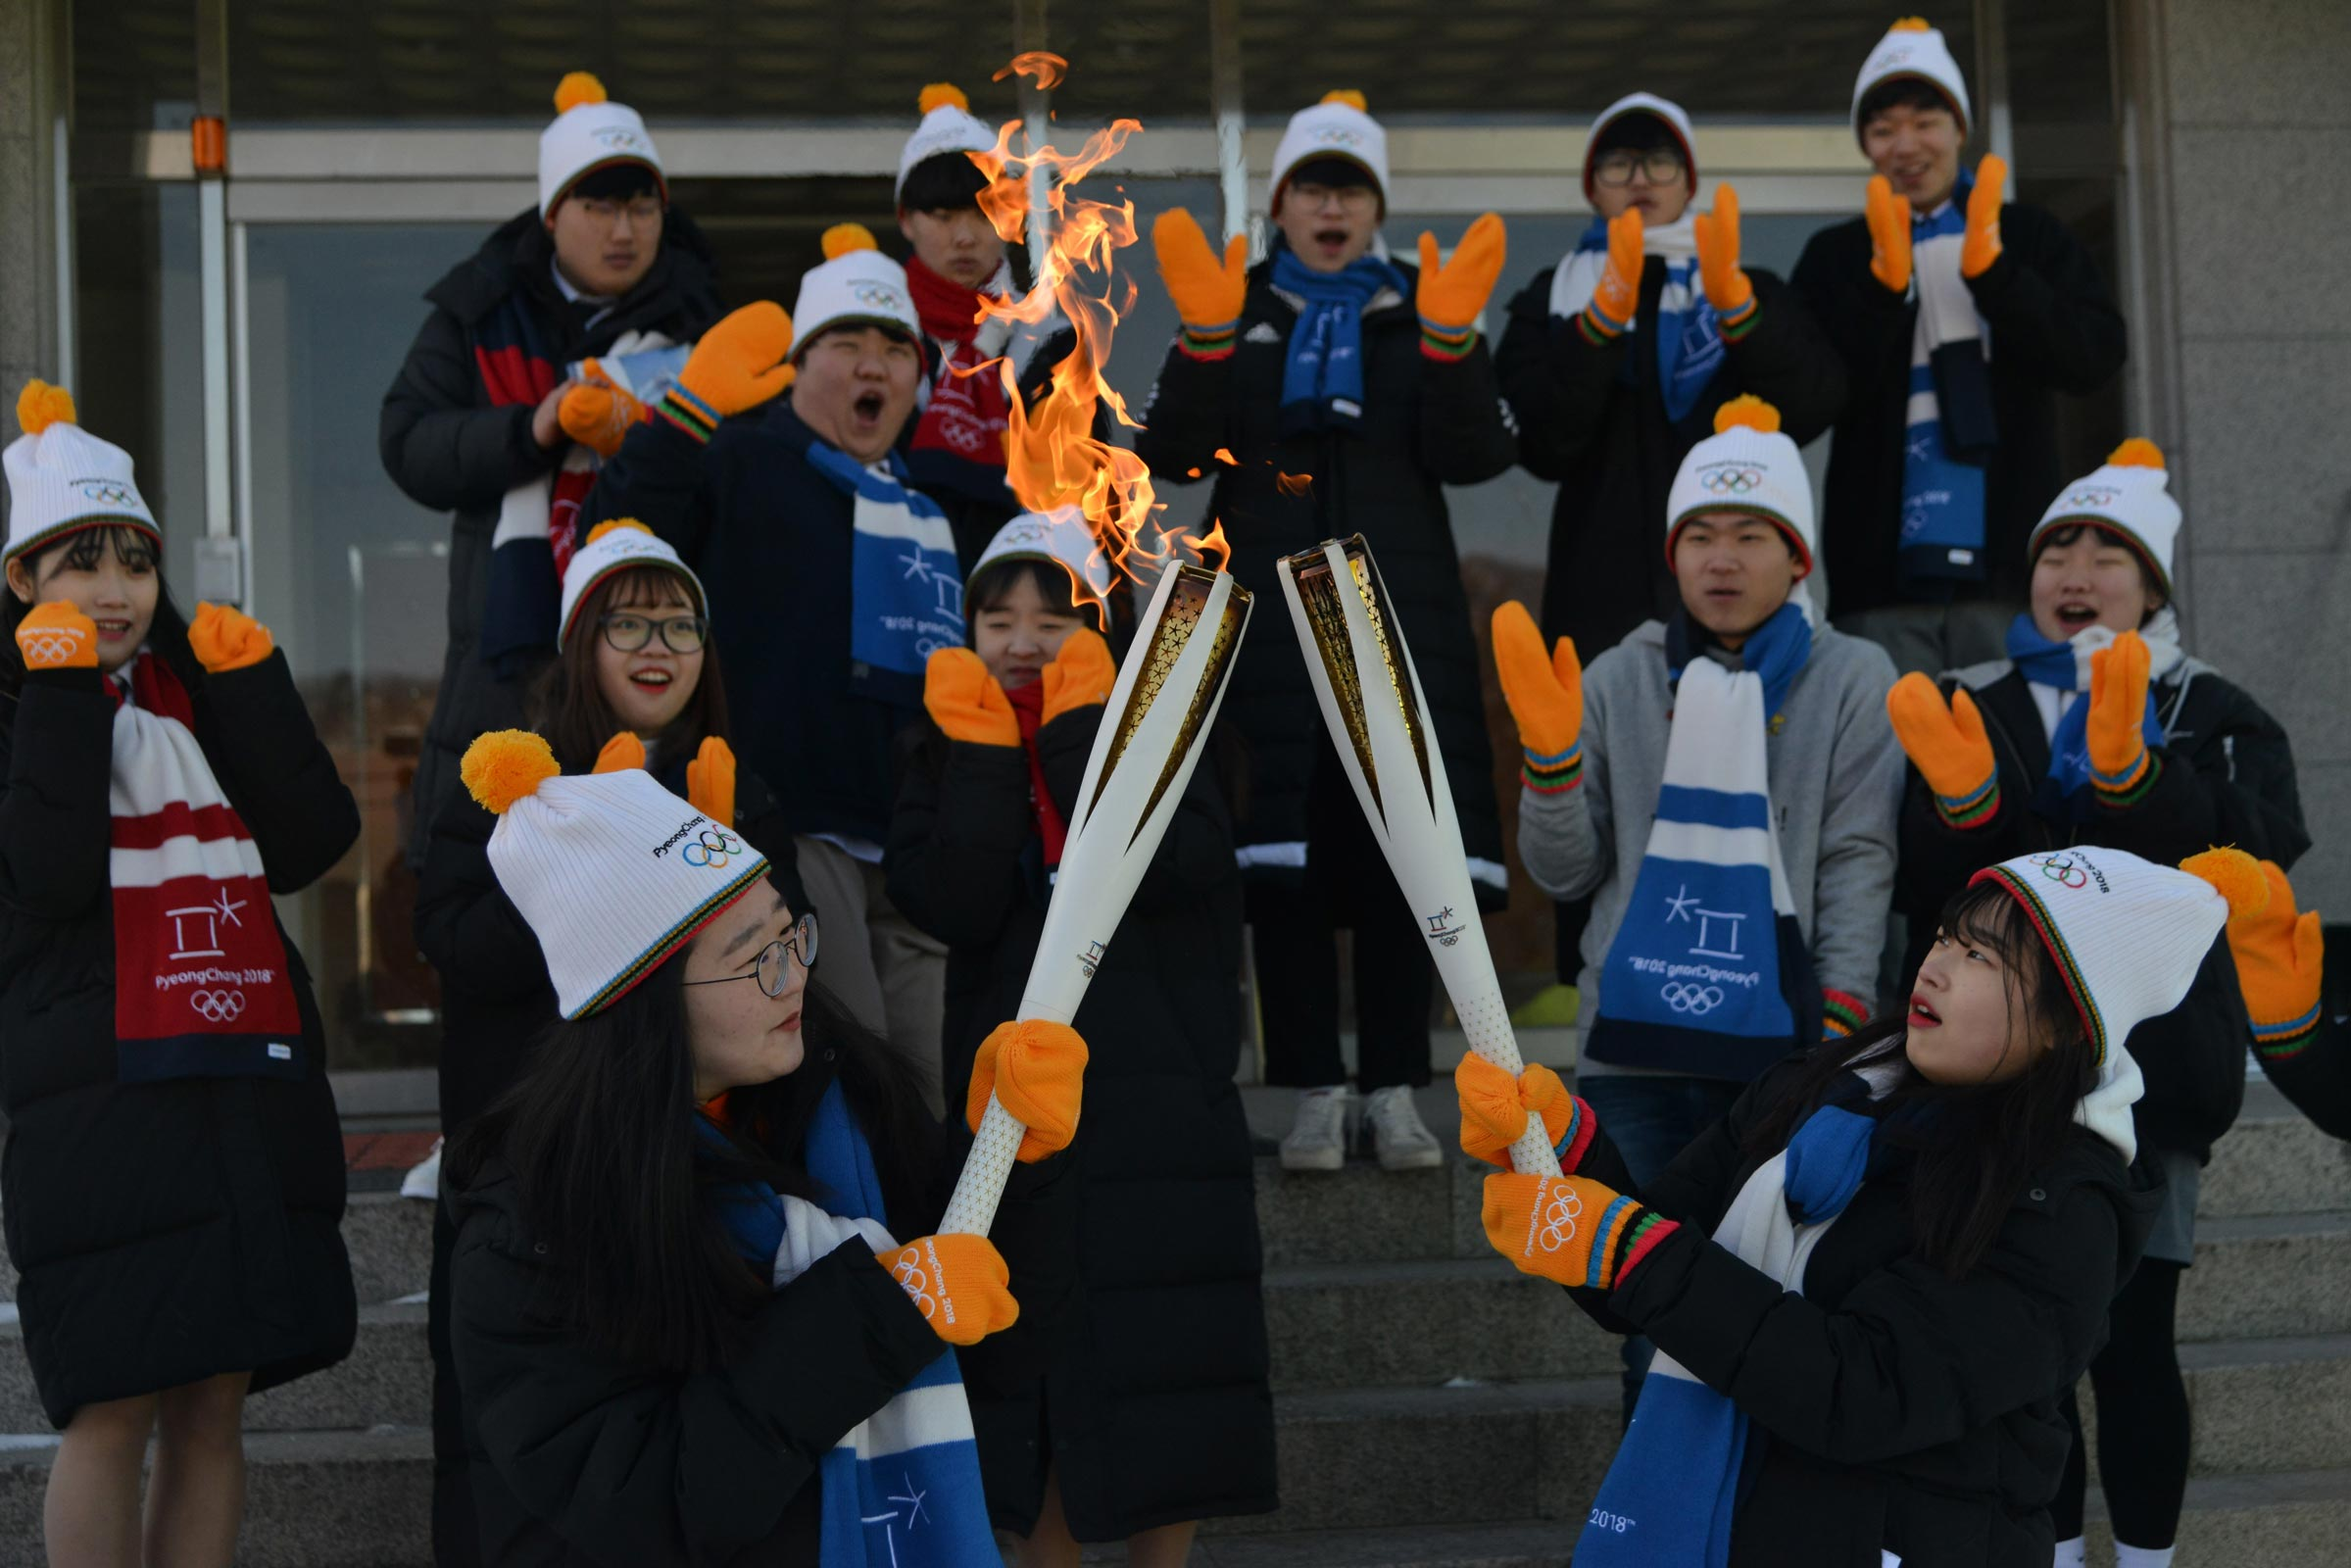 PyeongChang 2018 Olympic Torch Relay - Day 85